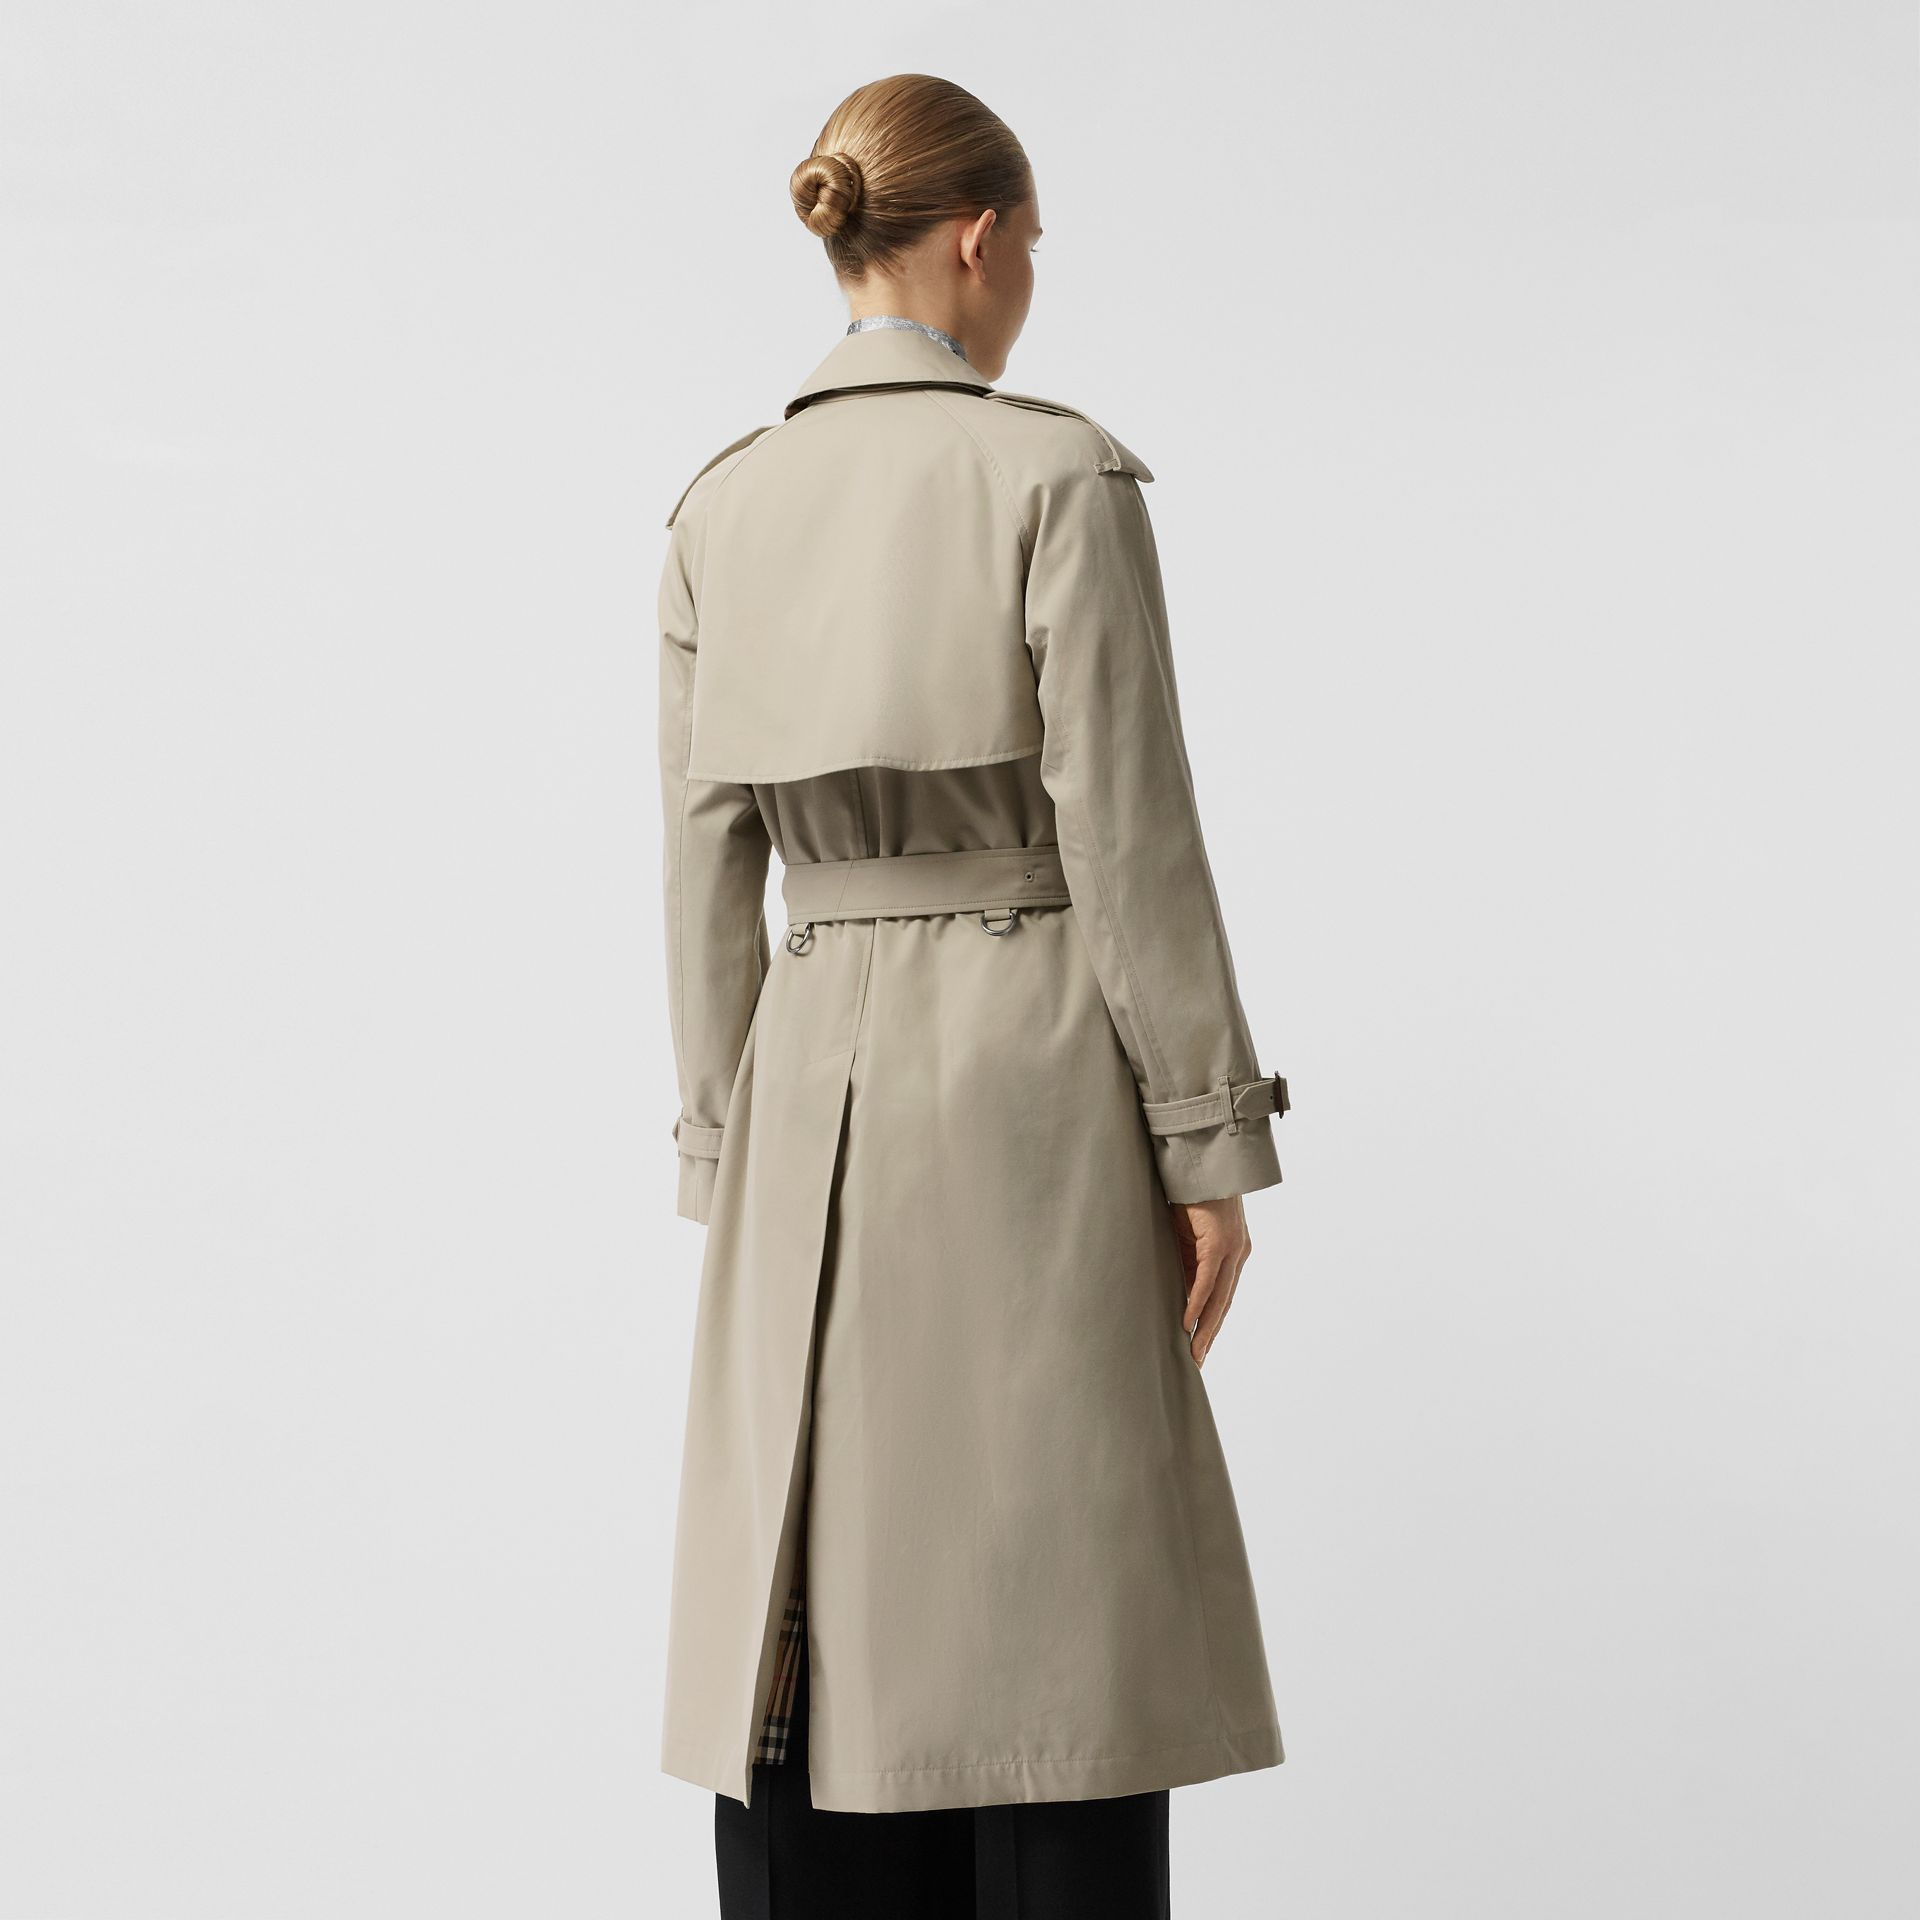 Grommet Detail Cotton Gabardine Trench Coat in Stone - Women | Burberry - gallery image 2